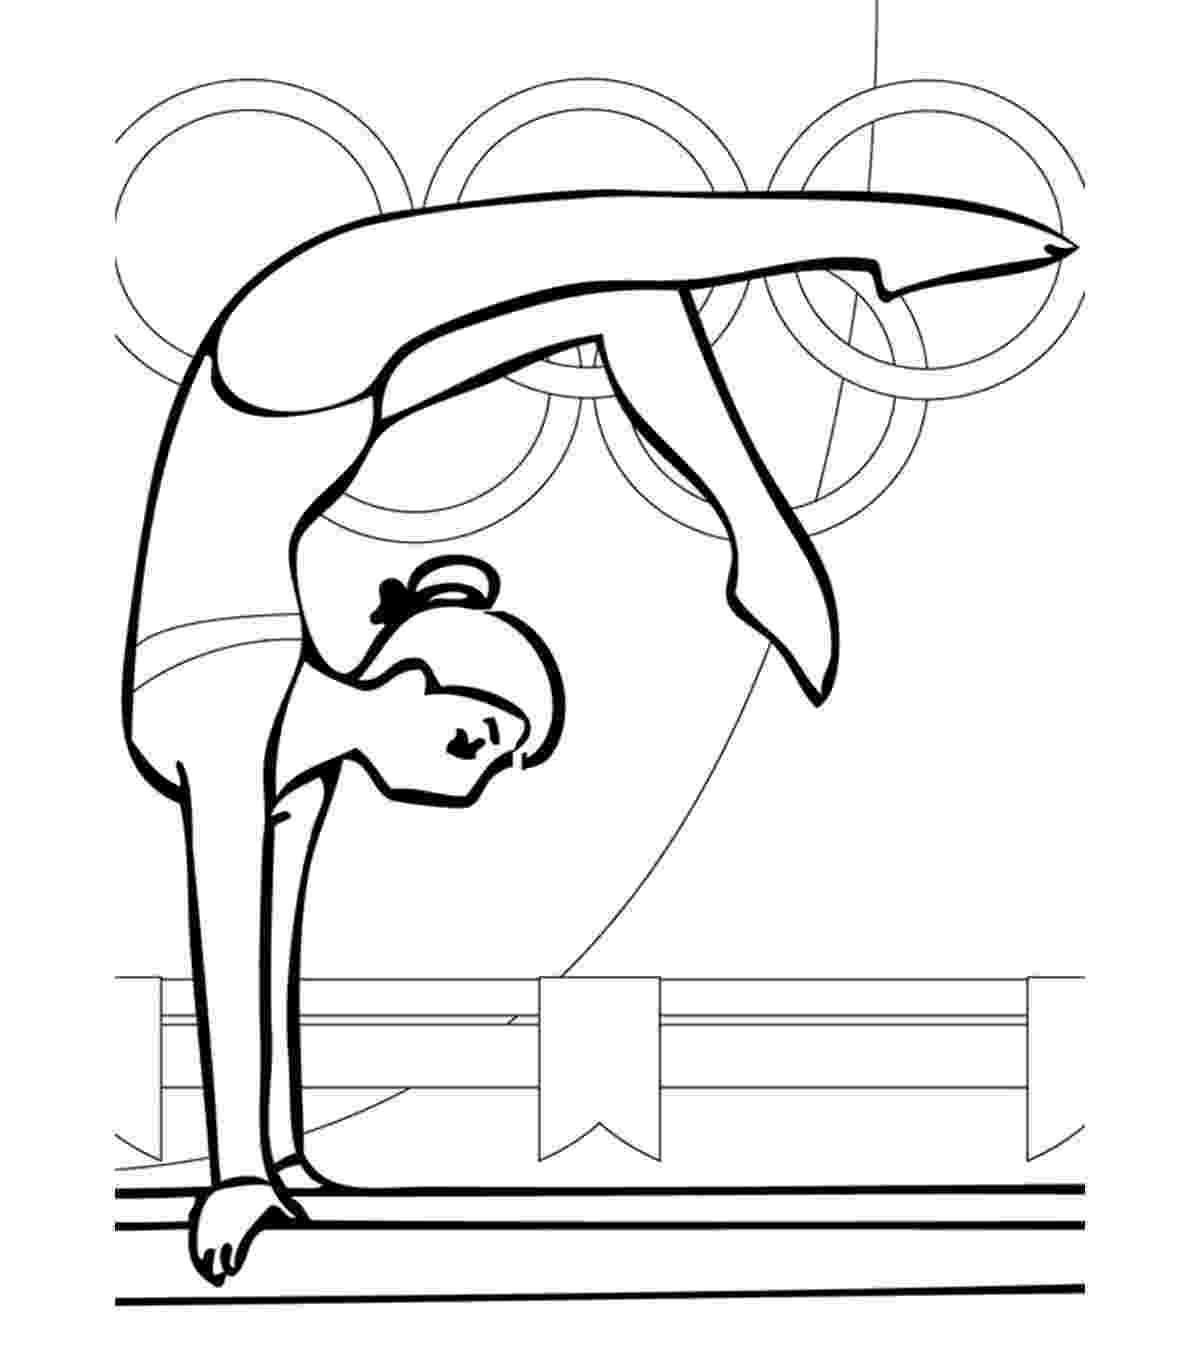 kids sports coloring pages free printable sports coloring pages online sports pages kids sports coloring